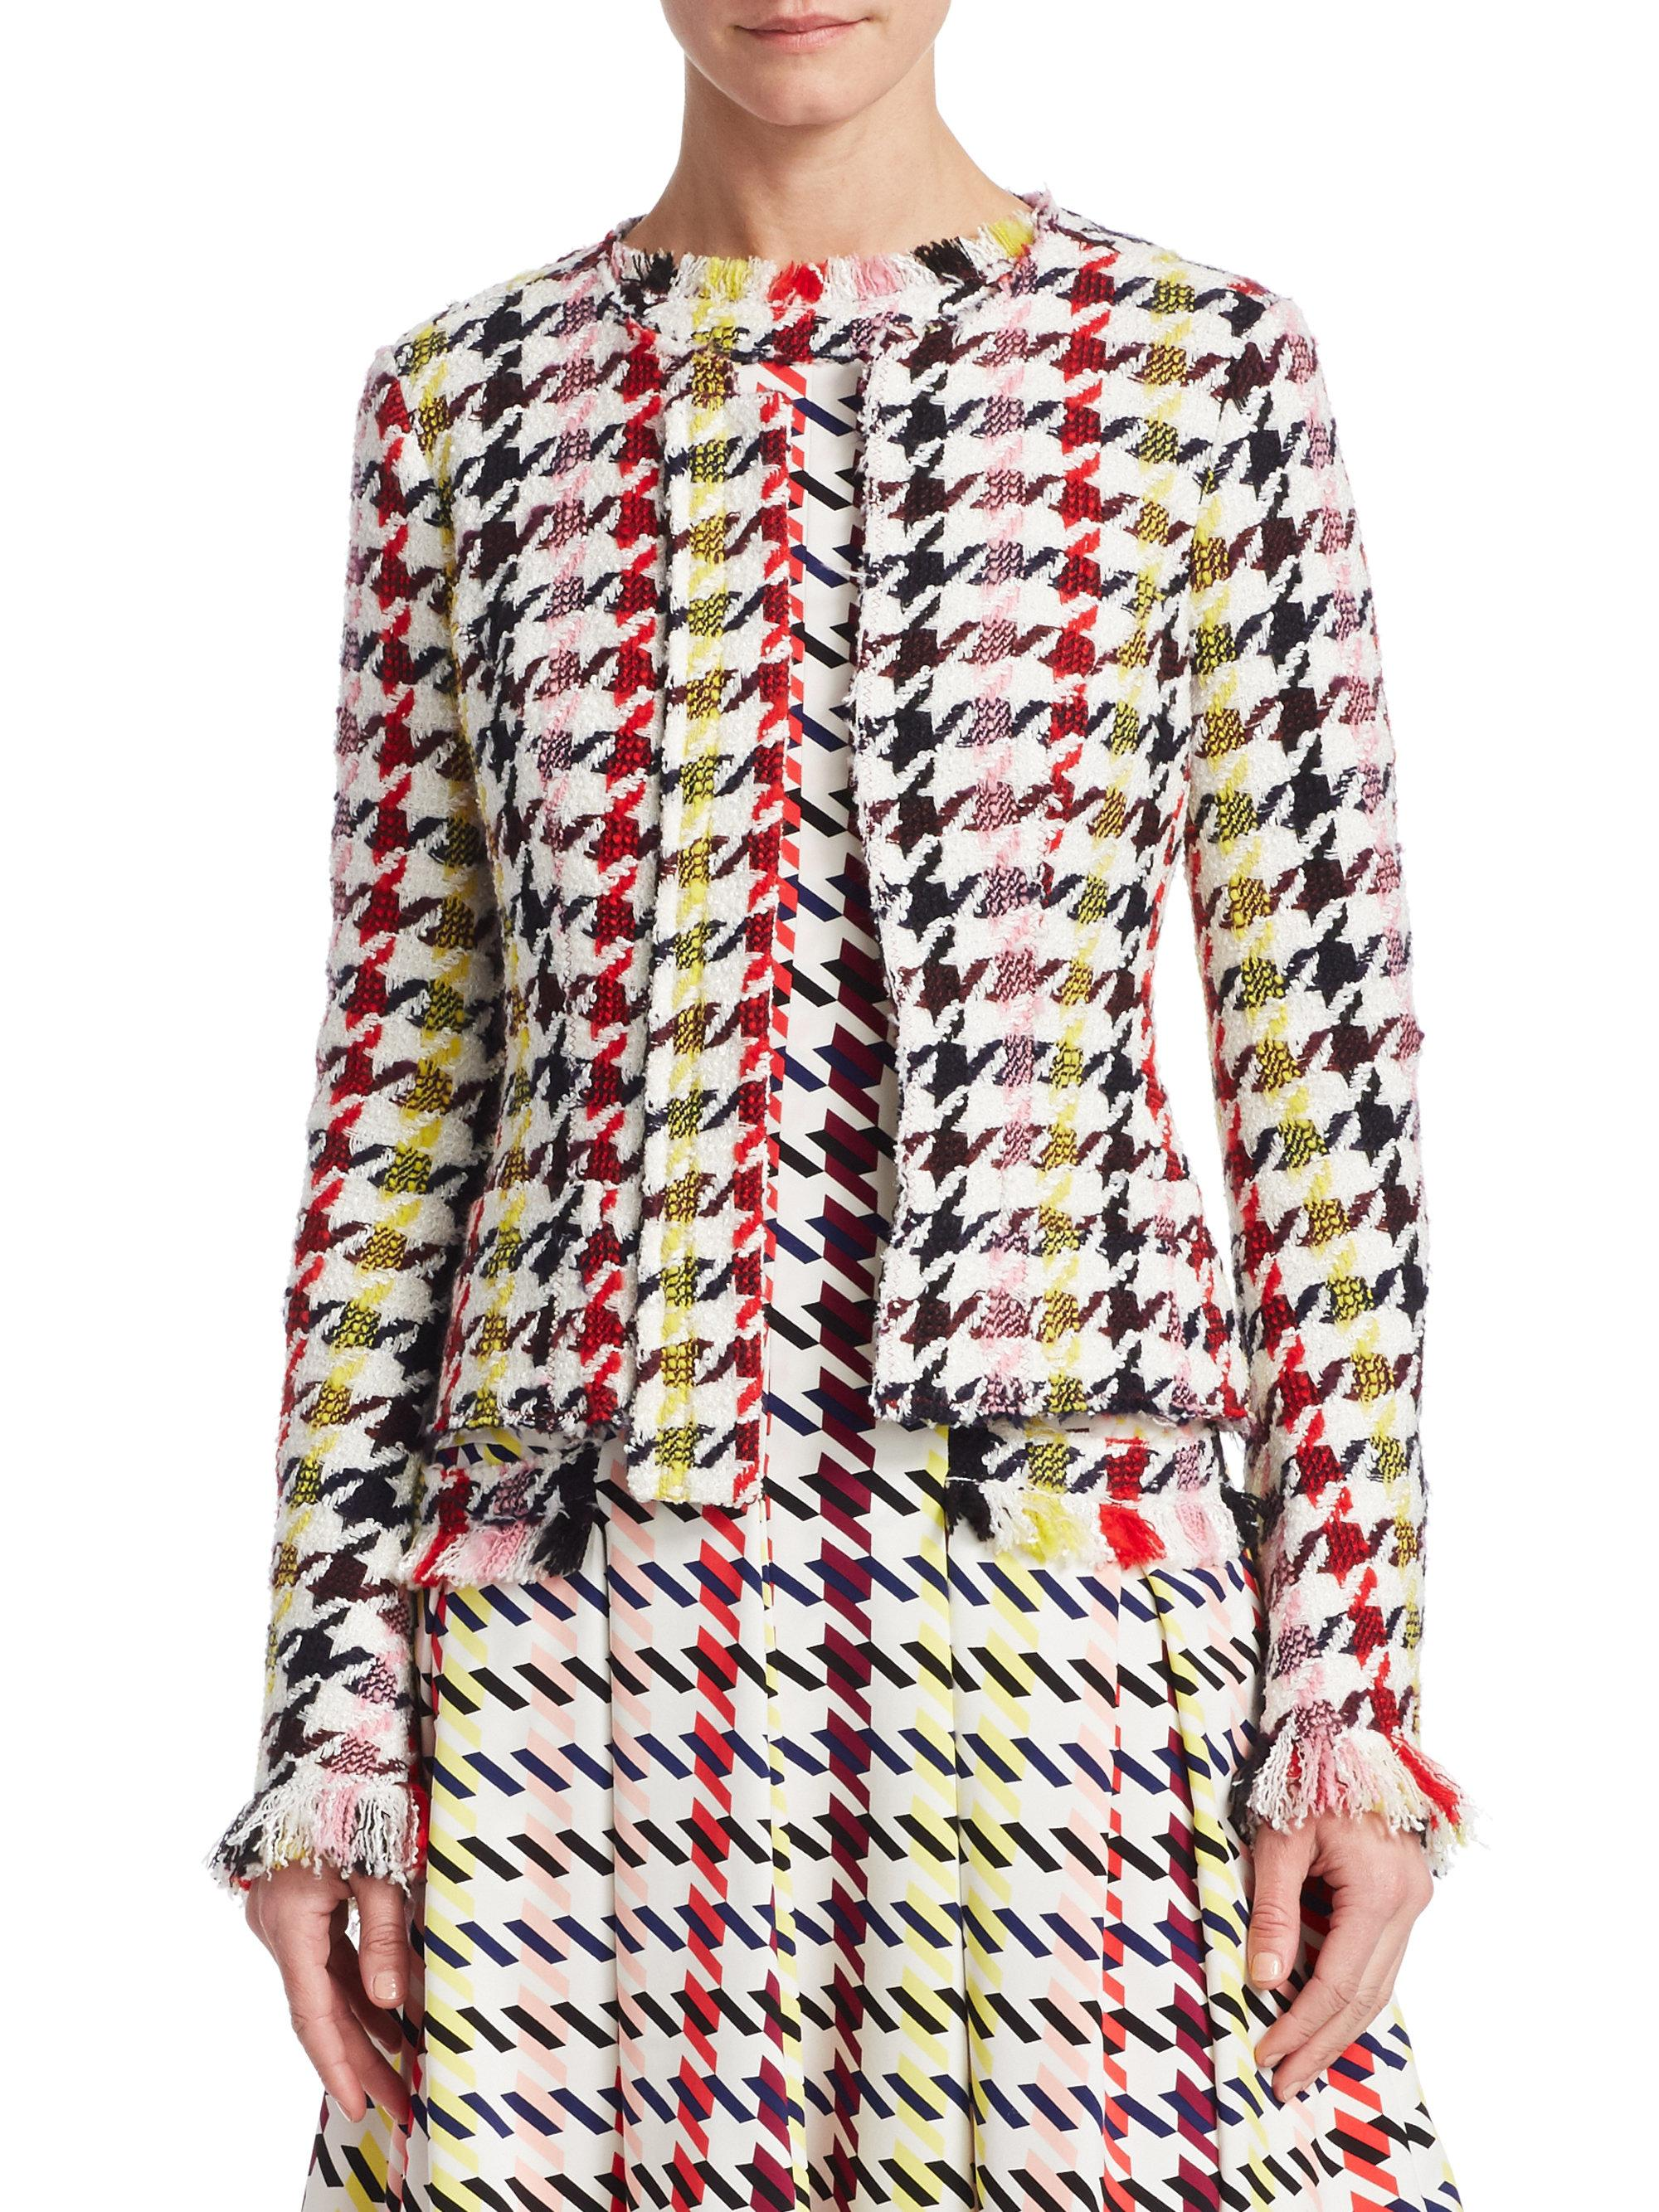 Oscar de la Renta graphic-print tweed jacket Discount 2018 Discount Aaa Discount Real Clearance Best Place 1G3XYAk